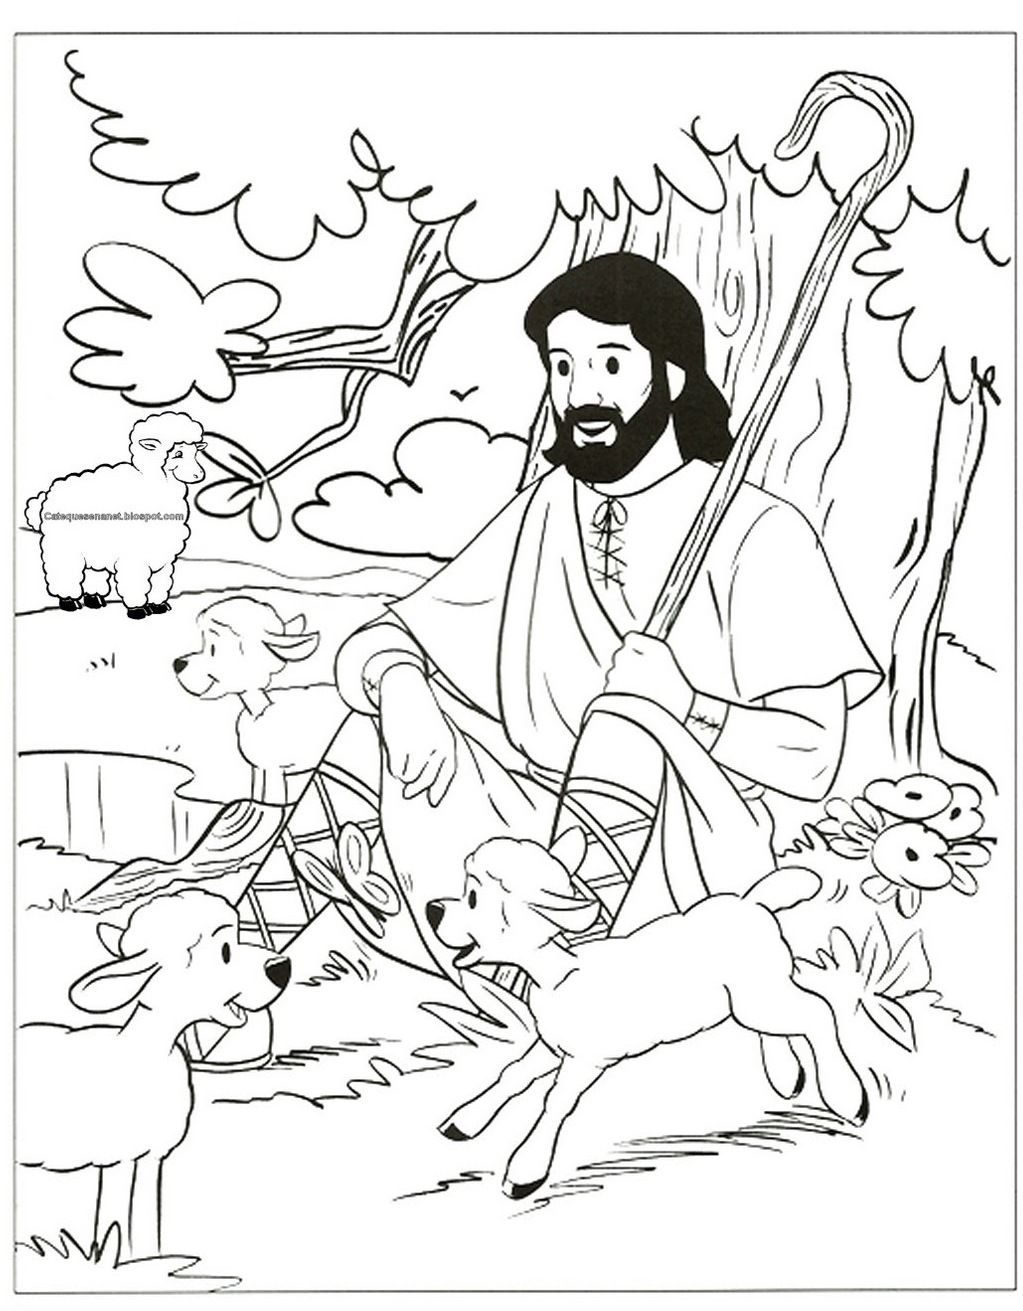 Adult Cute Shepherd Coloring Pages Gallery Images best good shepherd drawing likeness bible nt jesus the pinterest drawings images